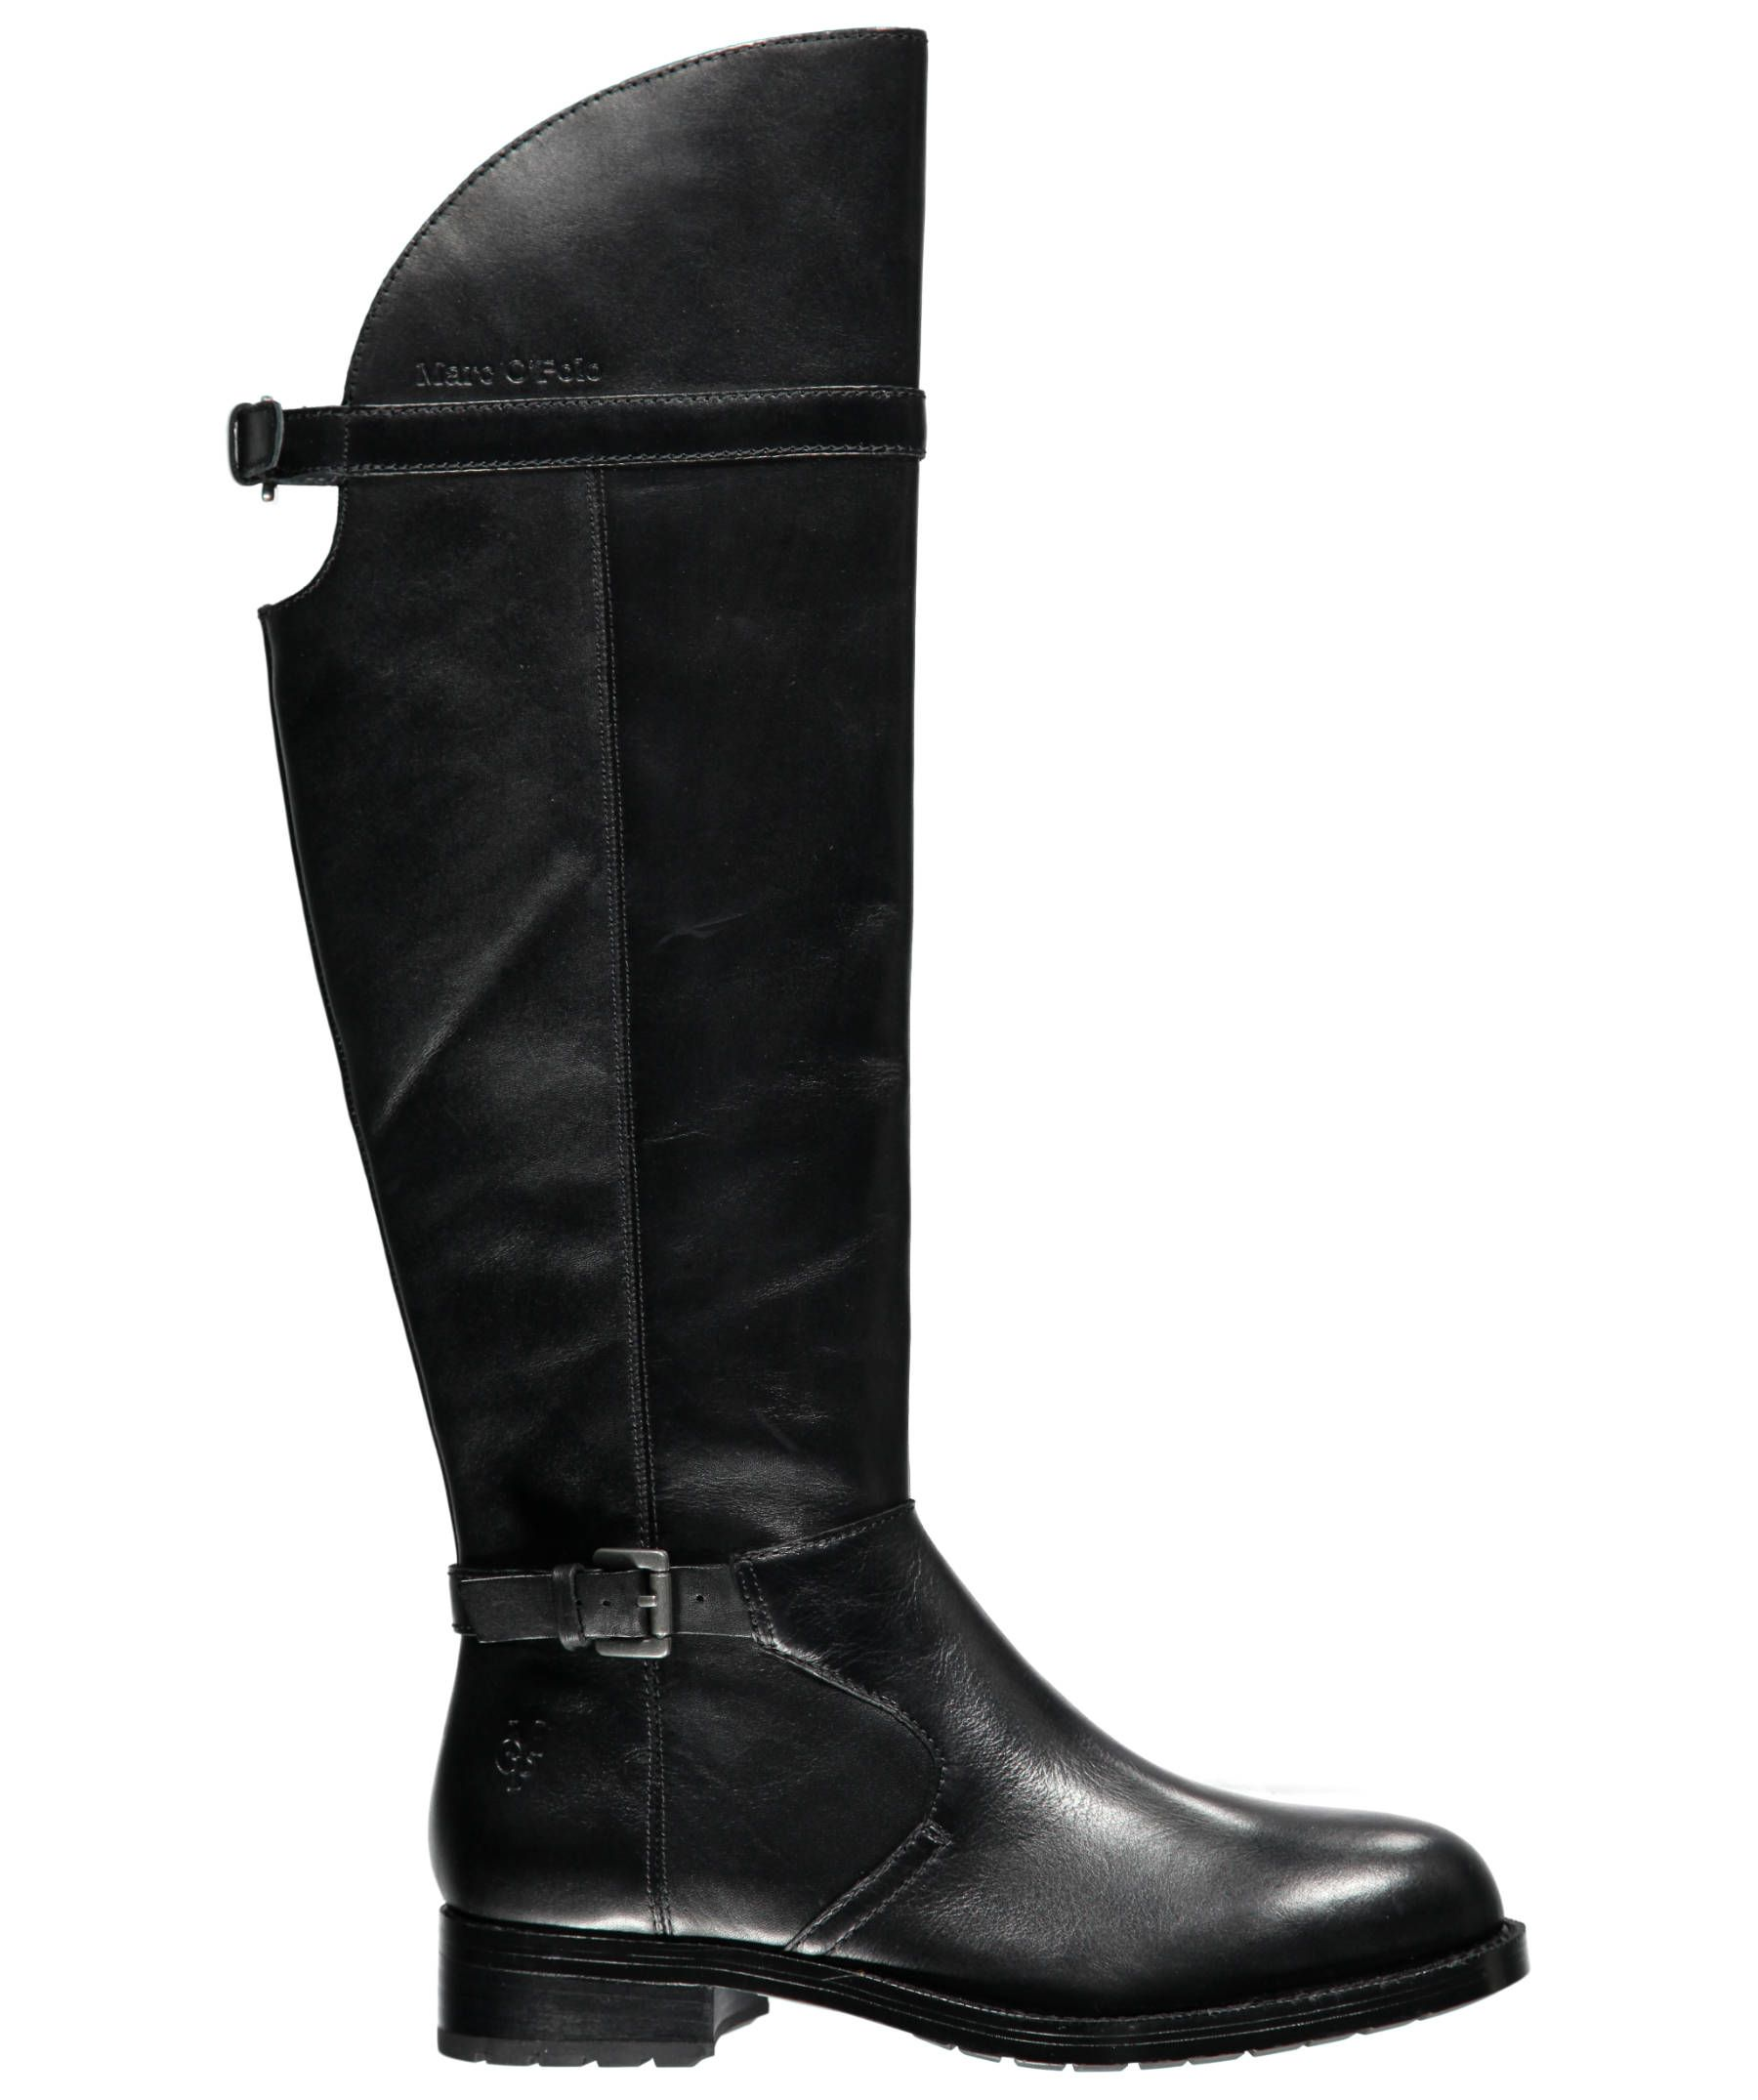 sports shoes 5d0e6 52344 Damen Stiefel von Marc O'Polo #shoes #boots #fall #trends ...